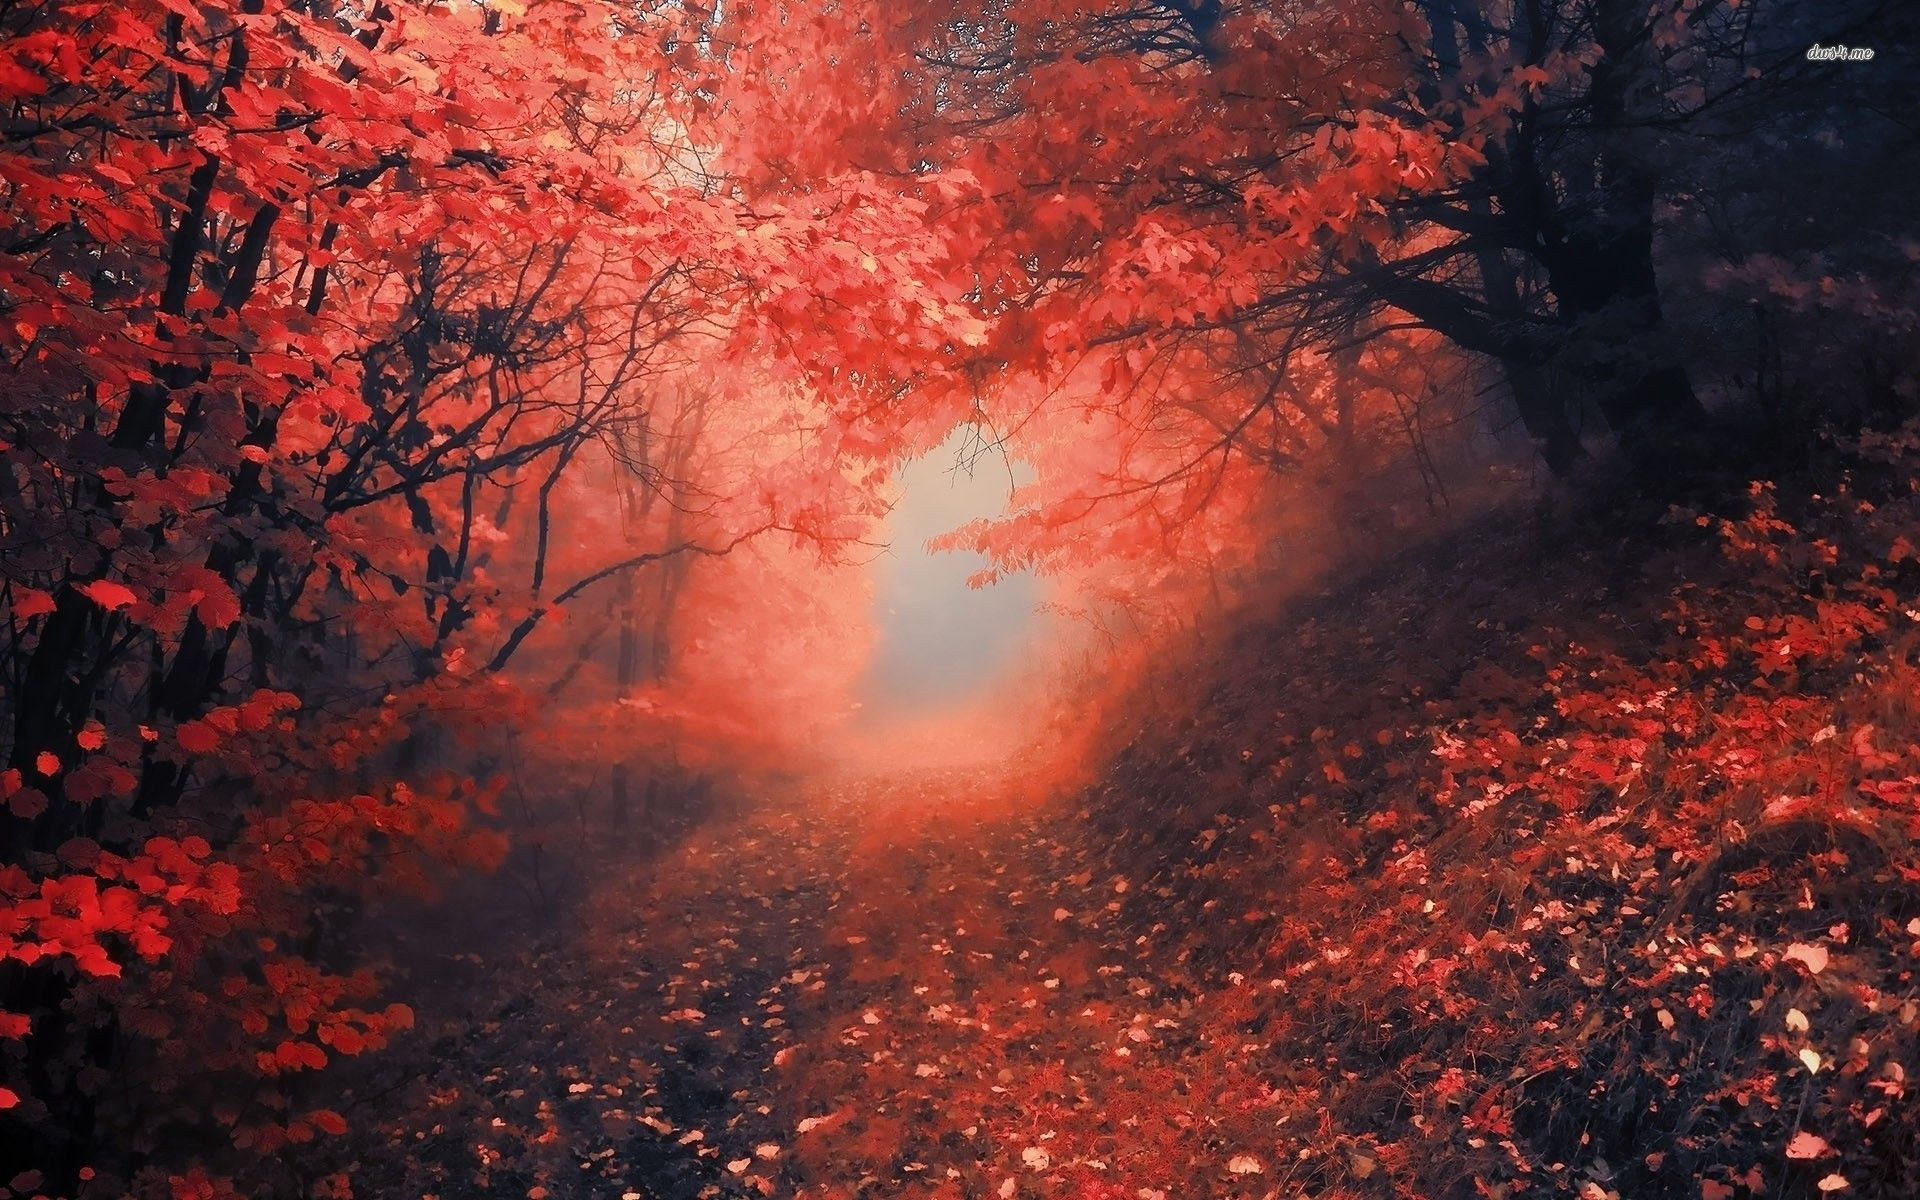 Red Forest Wallpapers - Top Free Red Forest Backgrounds ...